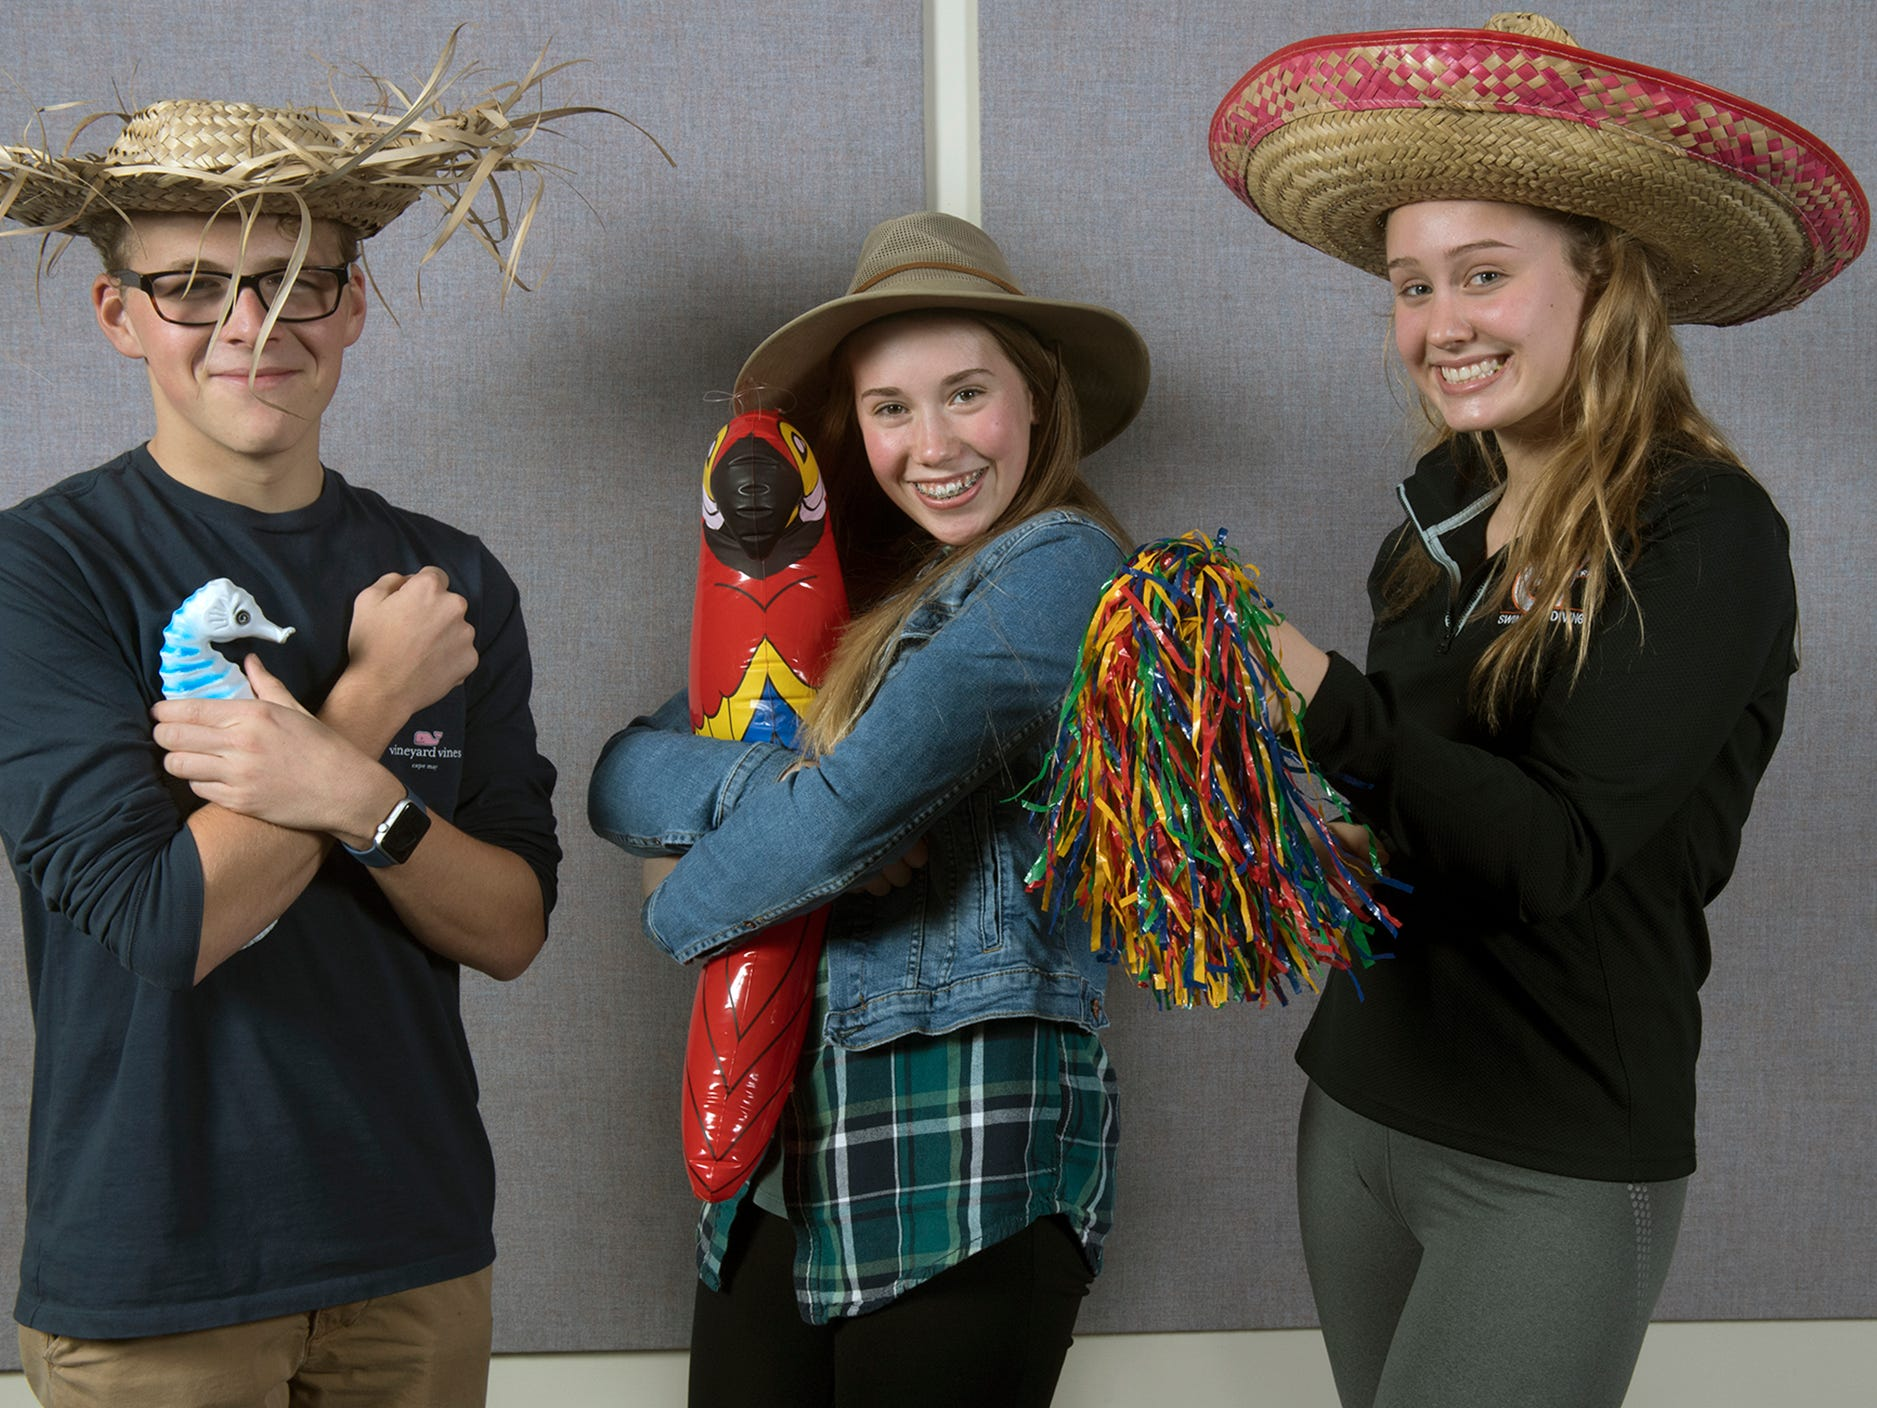 From the left, Clayton Brosend, Brynn DuRand and Sarah Minich, of the Central York swimming team, pose during the 2018-19 GameTimePa YAIAA Winter Media Day Sunday November 11, 2018.